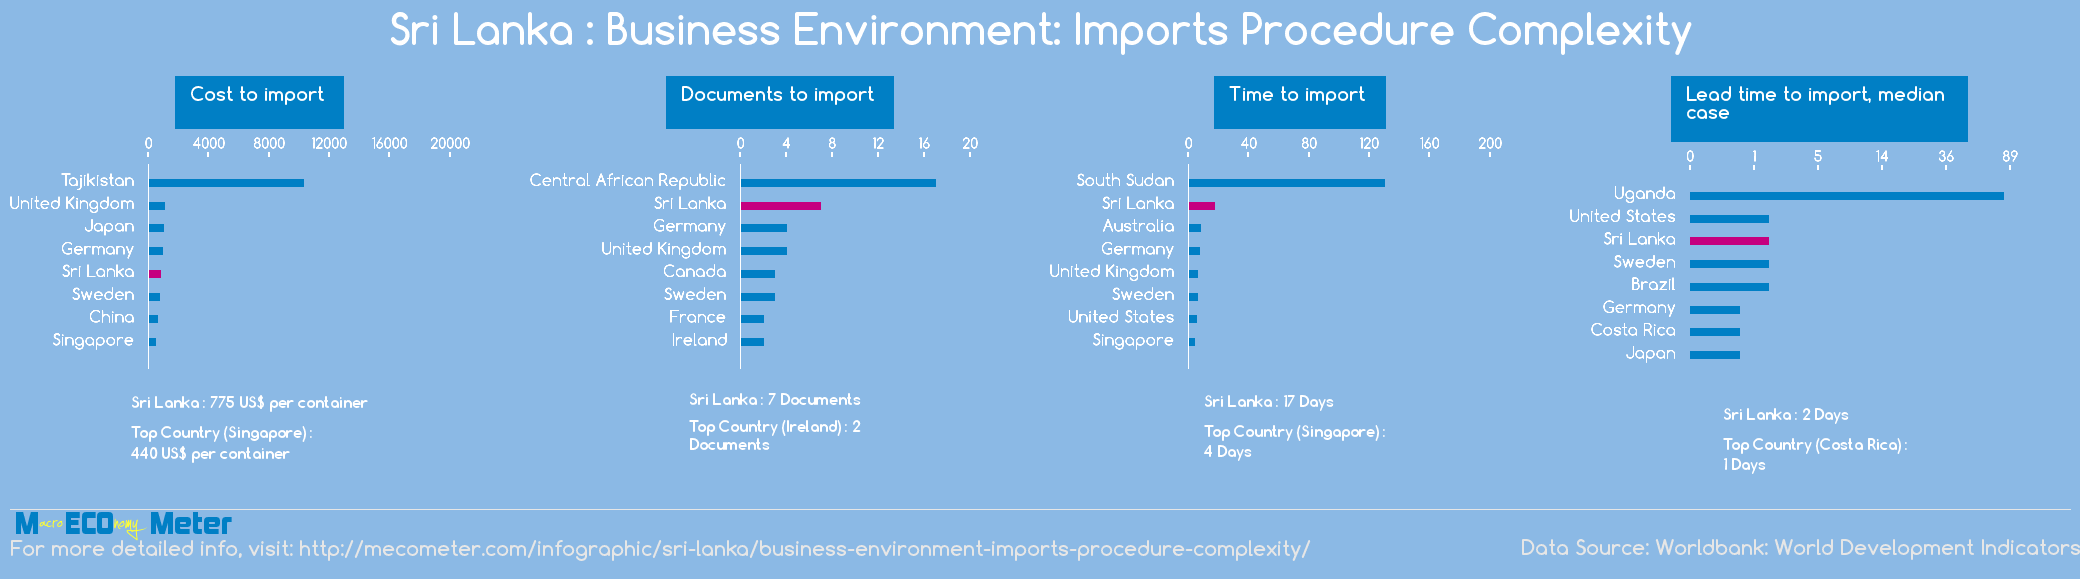 Sri Lanka : Business Environment: Imports Procedure Complexity